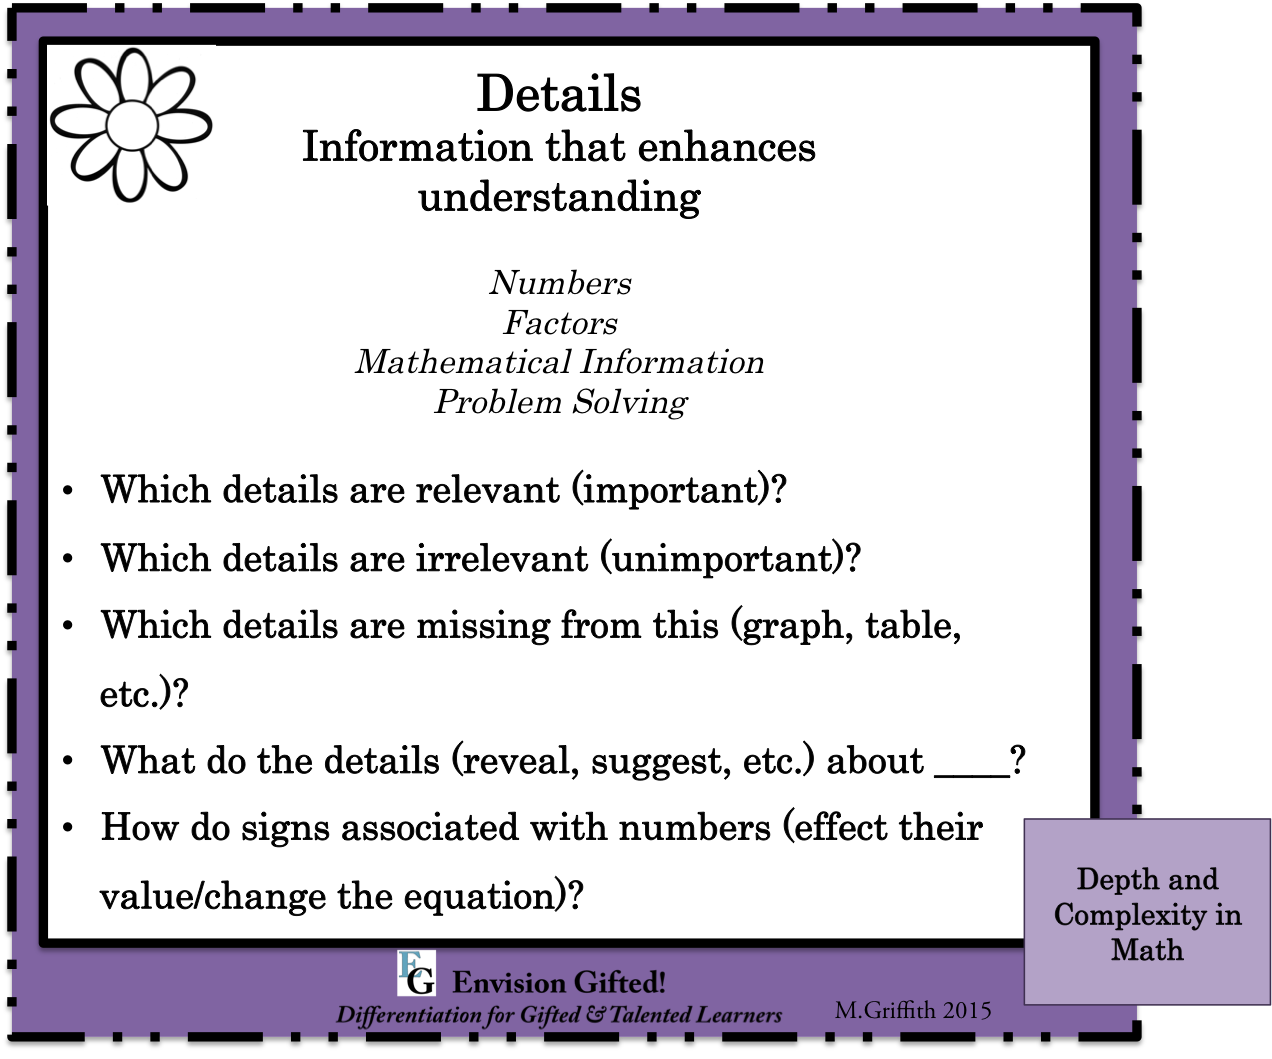 Depth and Complexity in Math - Envision Gifted